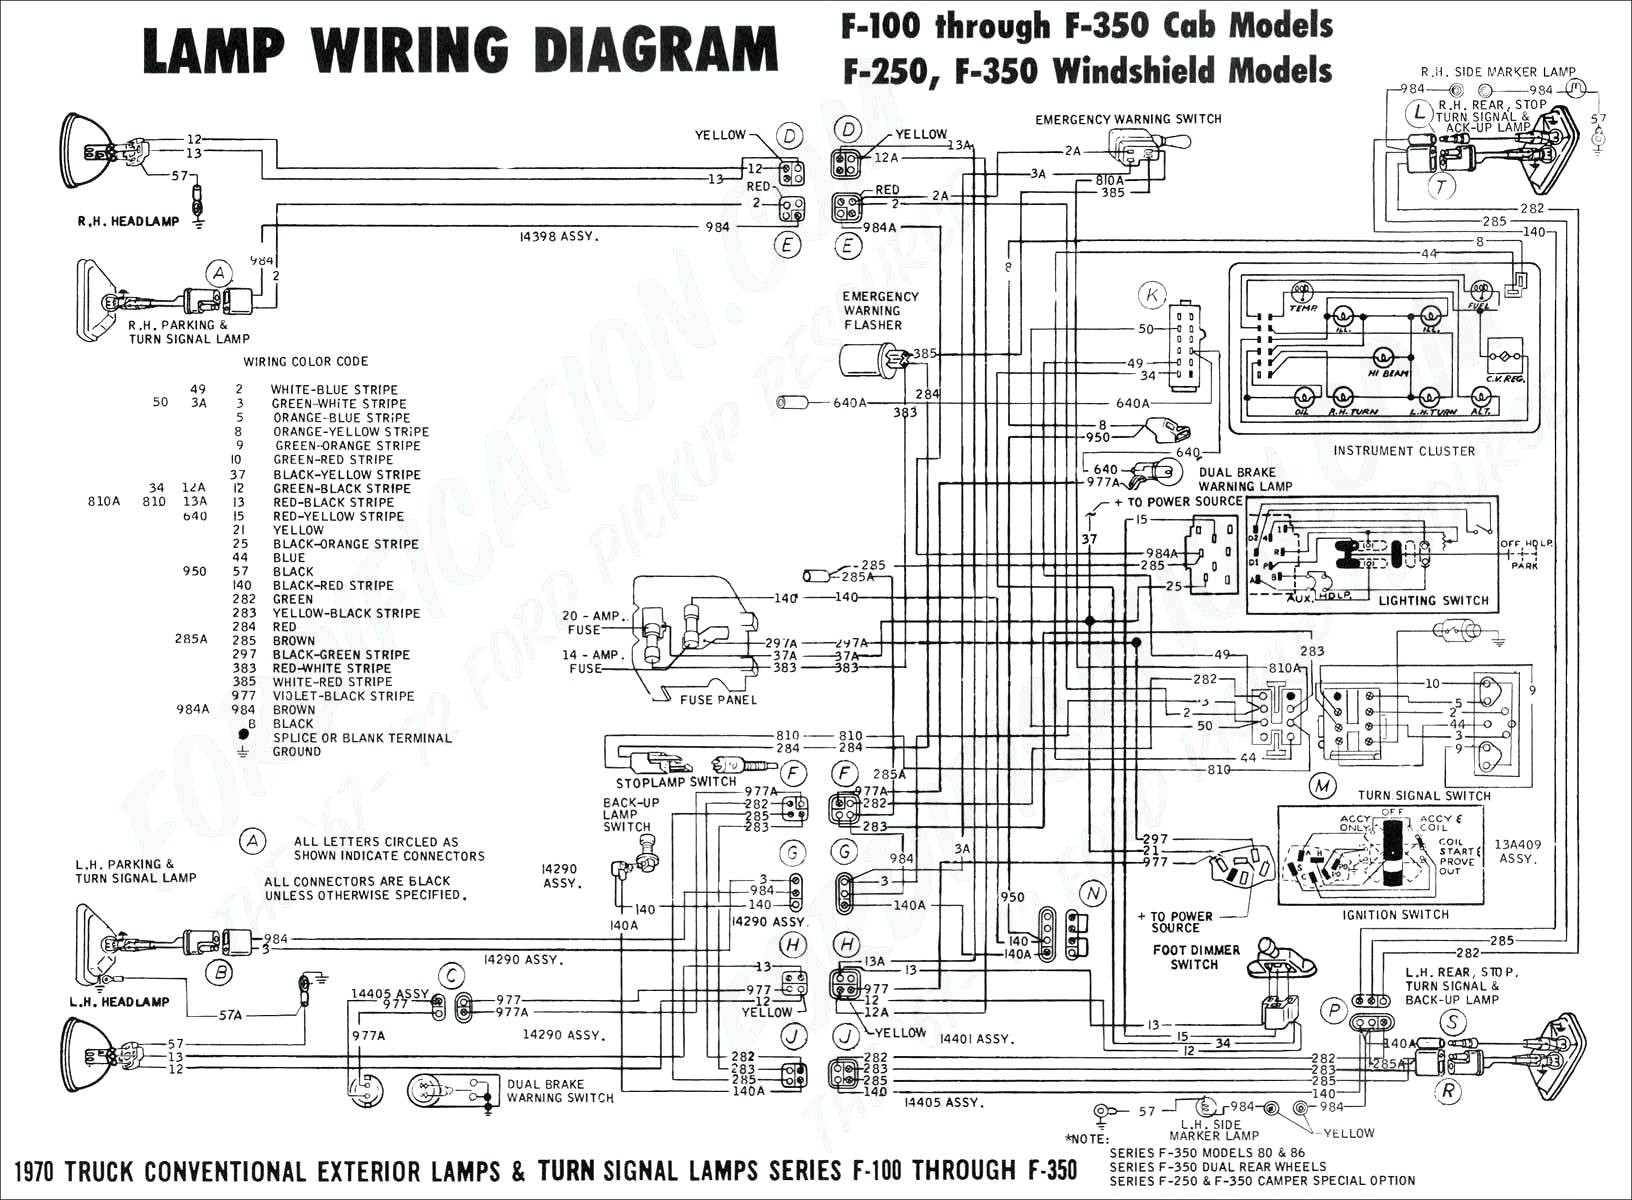 1967 Ford F100 Wiring Diagram Free Download • Playapk.co